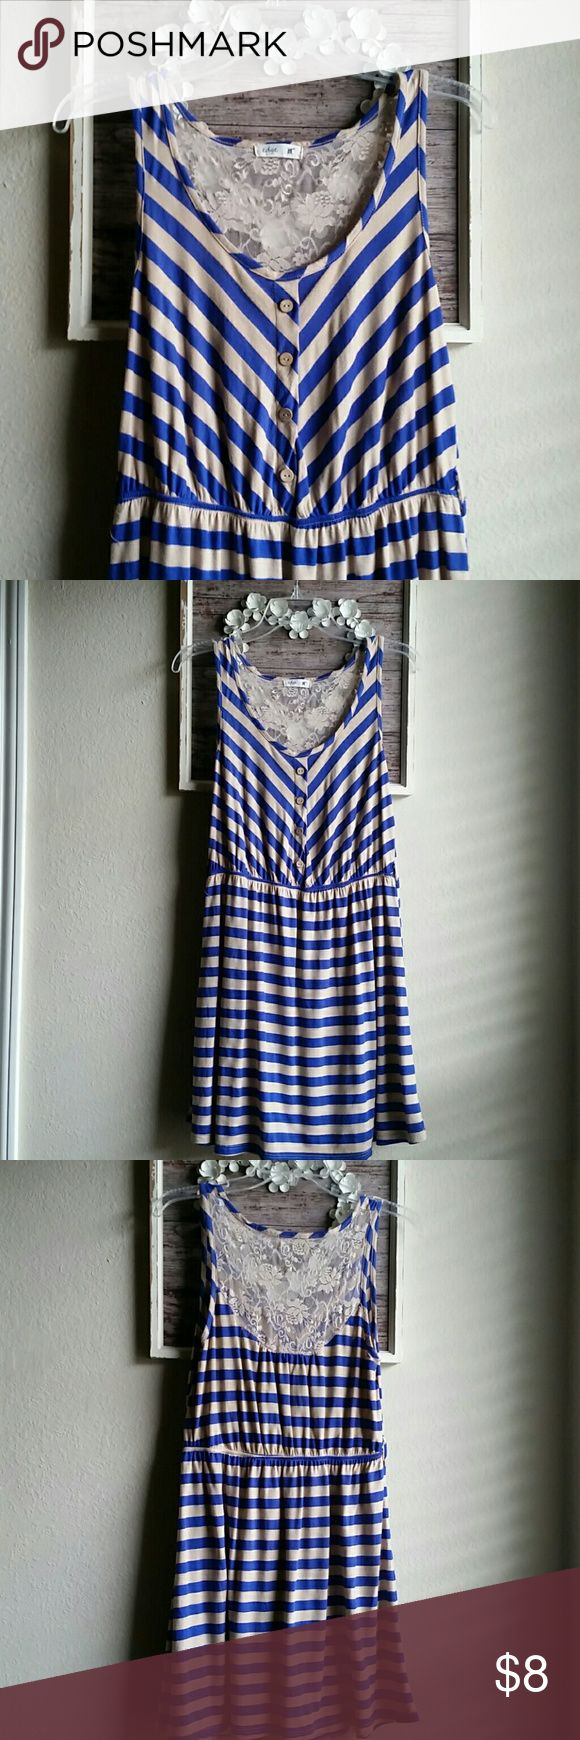 Cute dress Cobalt blue and tan striped. Floral lace back. Faux button front with elastic waist. Some elastic is coming out as shown in pic 4(reflected in price ) . Tags are missing but fits like a juniors large. Perfect for spring and summer Dresses